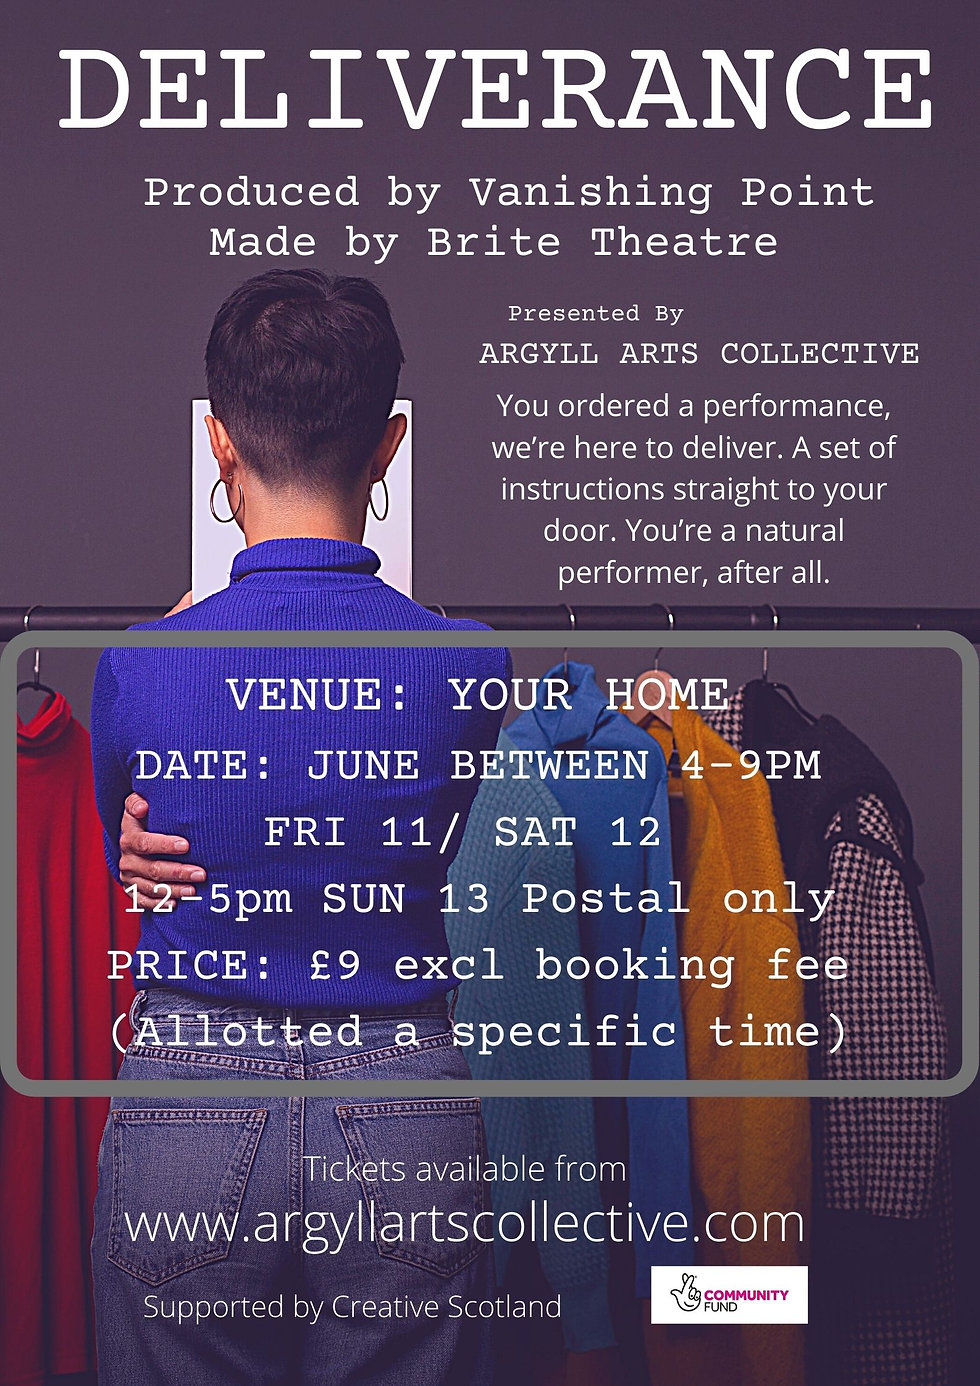 DELIVERANCE BY BRITETHEATRE Produced by